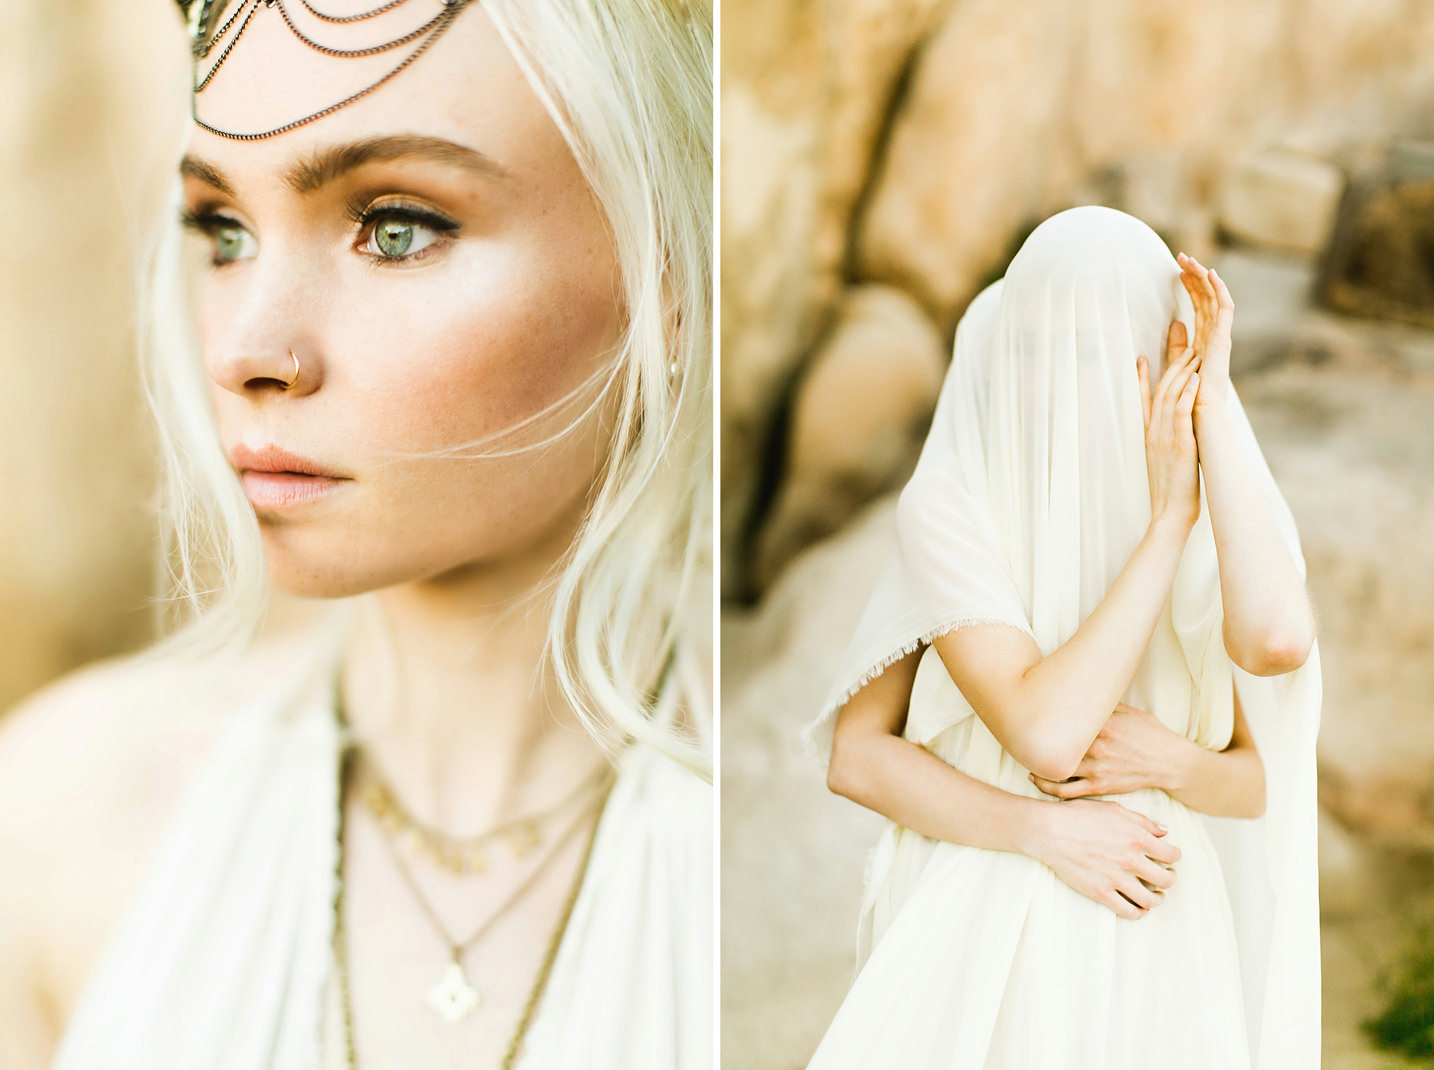 Joshua Tree Editorial Photo Shoot / Jenna Mahr / Ben Sasso